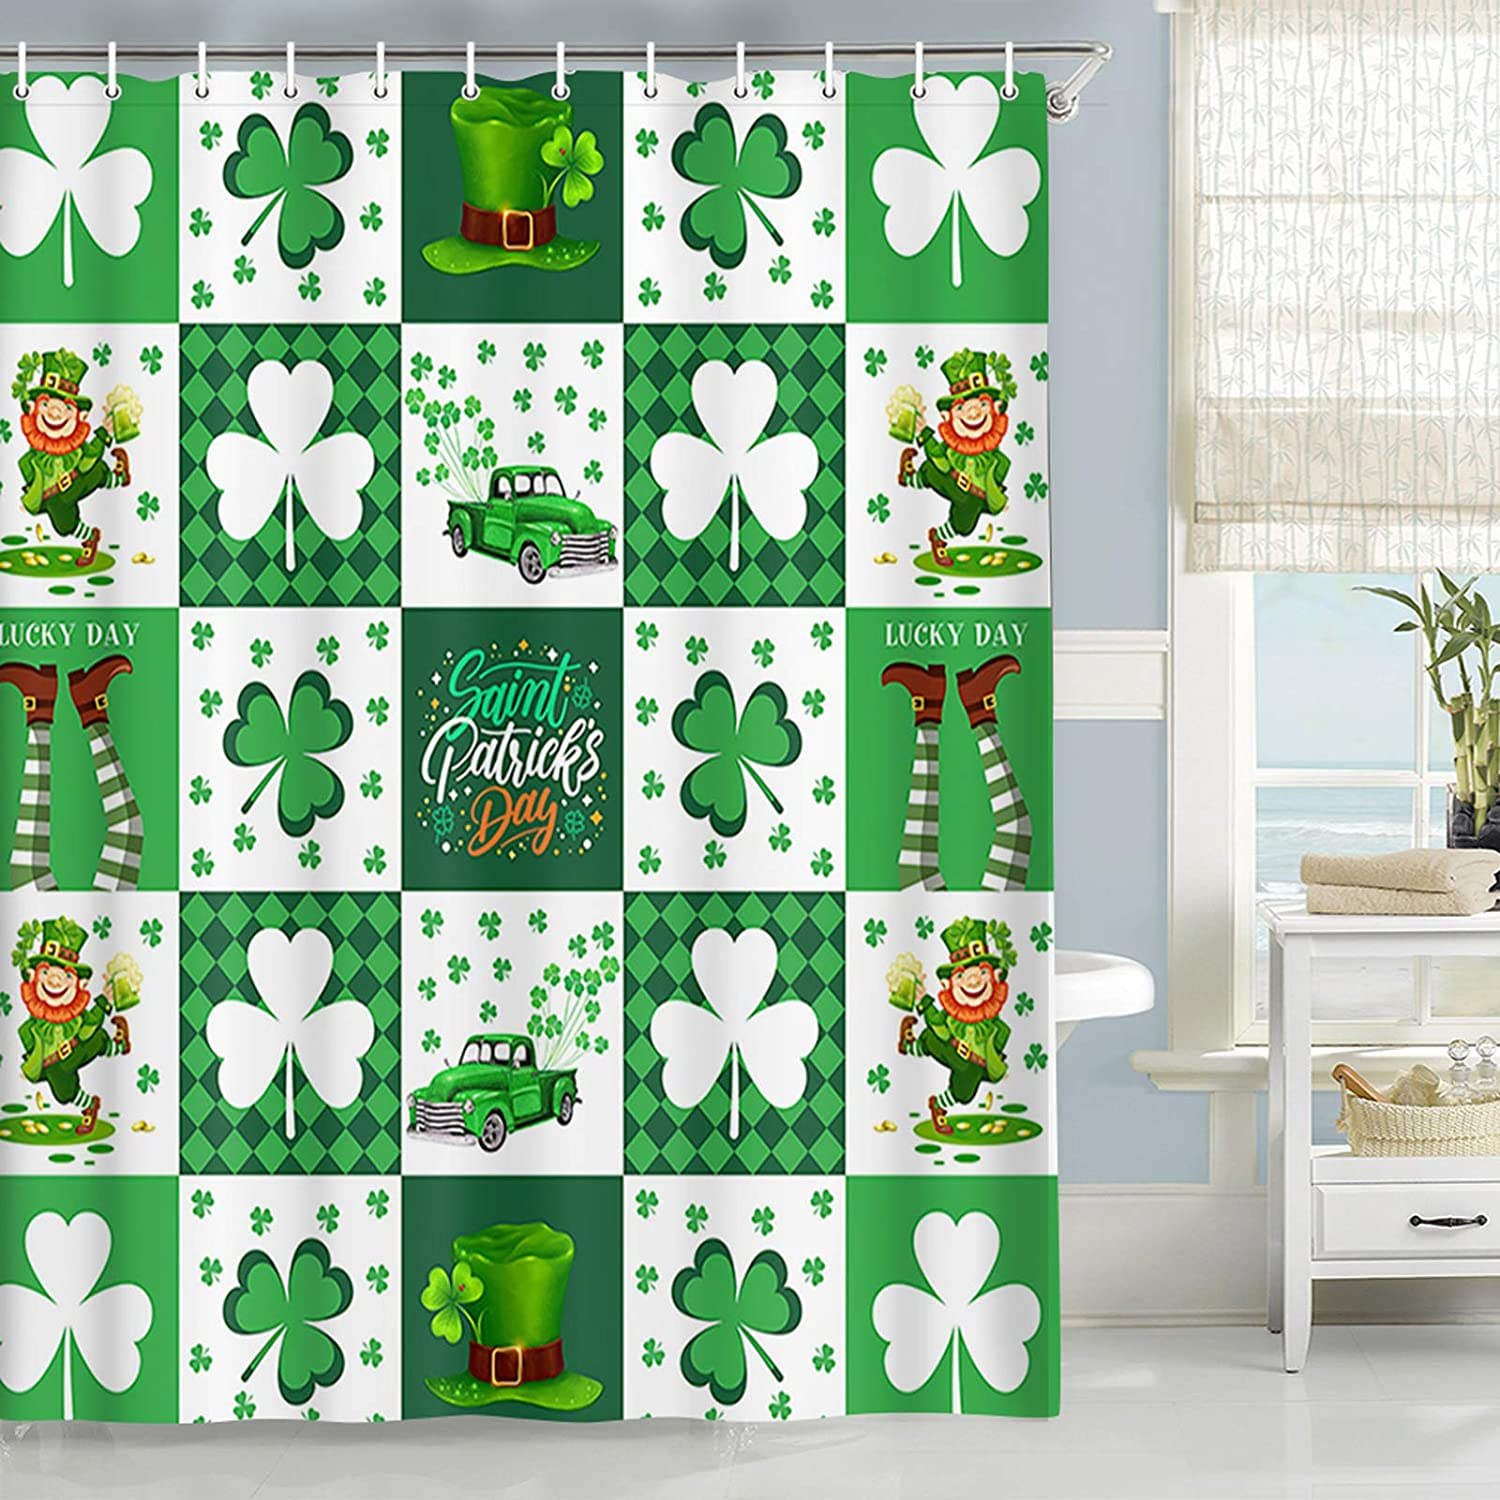 St. Patrick's Day Selling Shower store Curtain Cute C Truck Rustic Gnome with